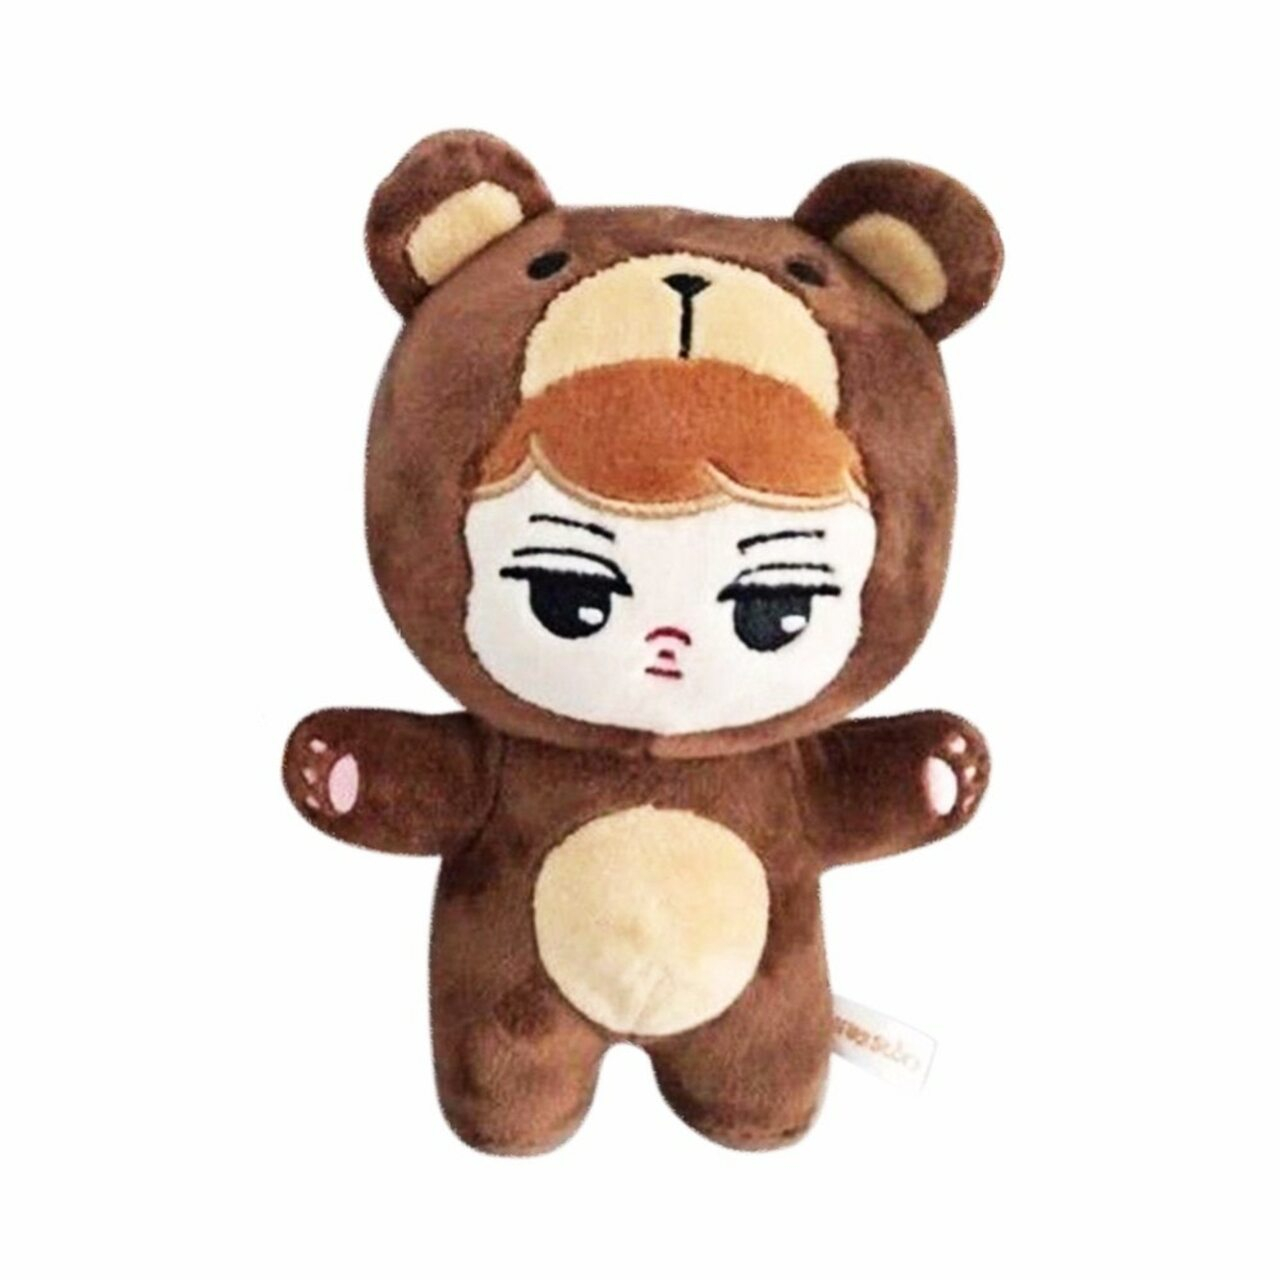 SGDOLL KPOP EXO Animal Plush Toy Soft Stuffed Doll Handmade KAI SEHUN CHEN BAEKHYUN DO LAY c=2